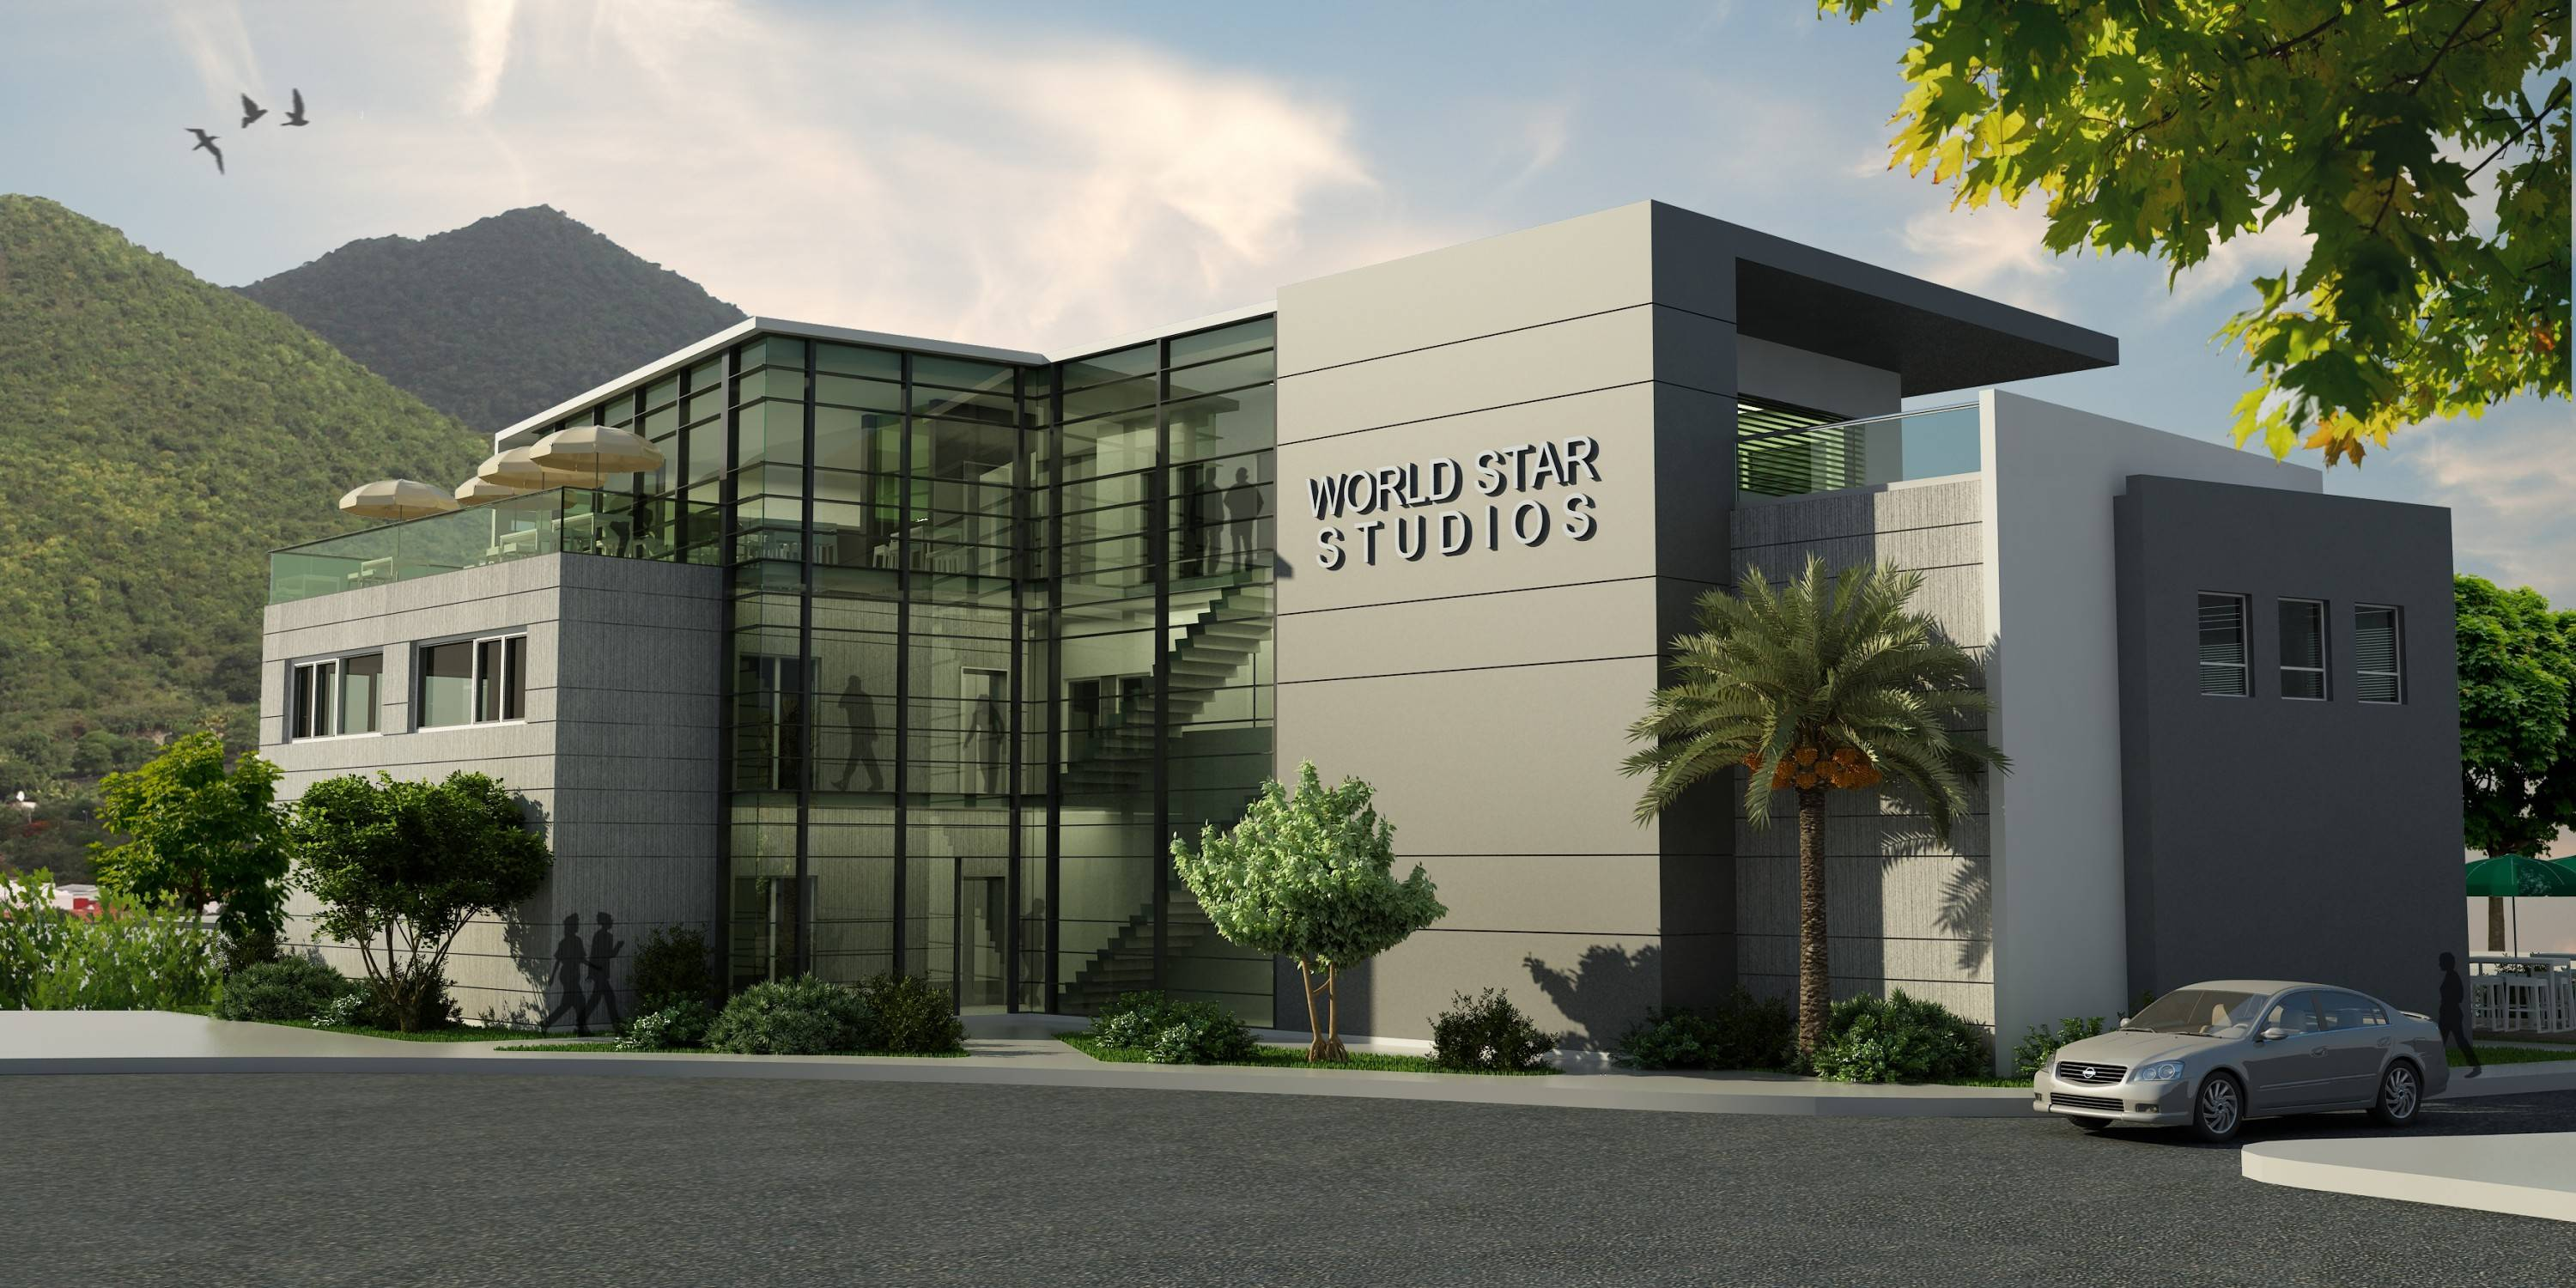 World Star Studios - c7cec-1c617-A1.jpg